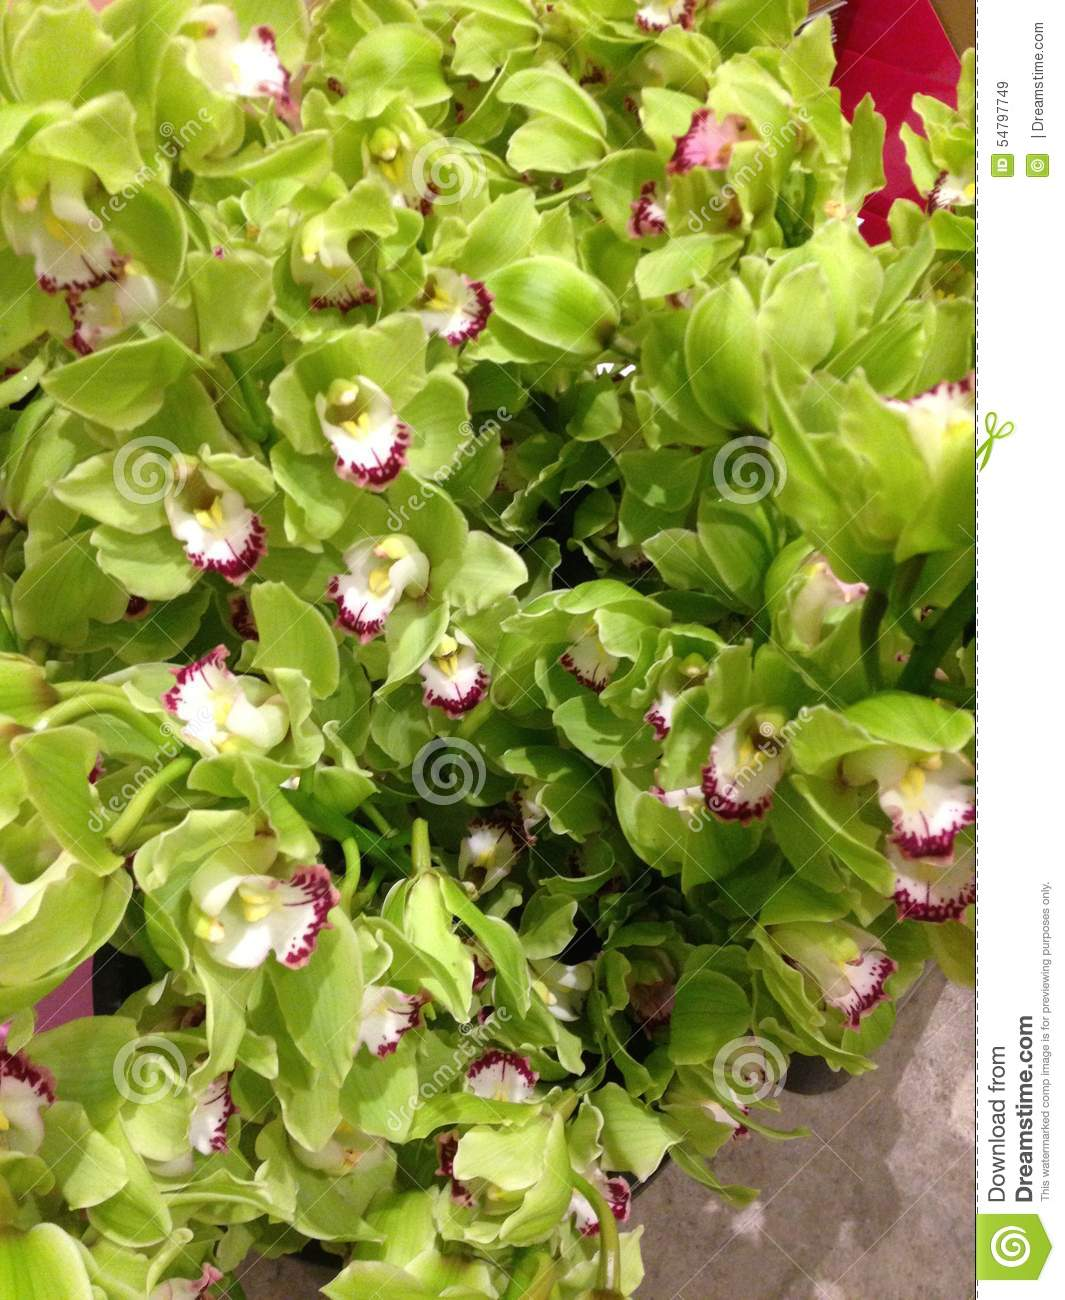 Remove Leafless Pseudobulbs The Pseudobulb Is A Thickening At Base Of Stem Each Bulb Will Develop Between One And Twelve Leaves Flower Bud